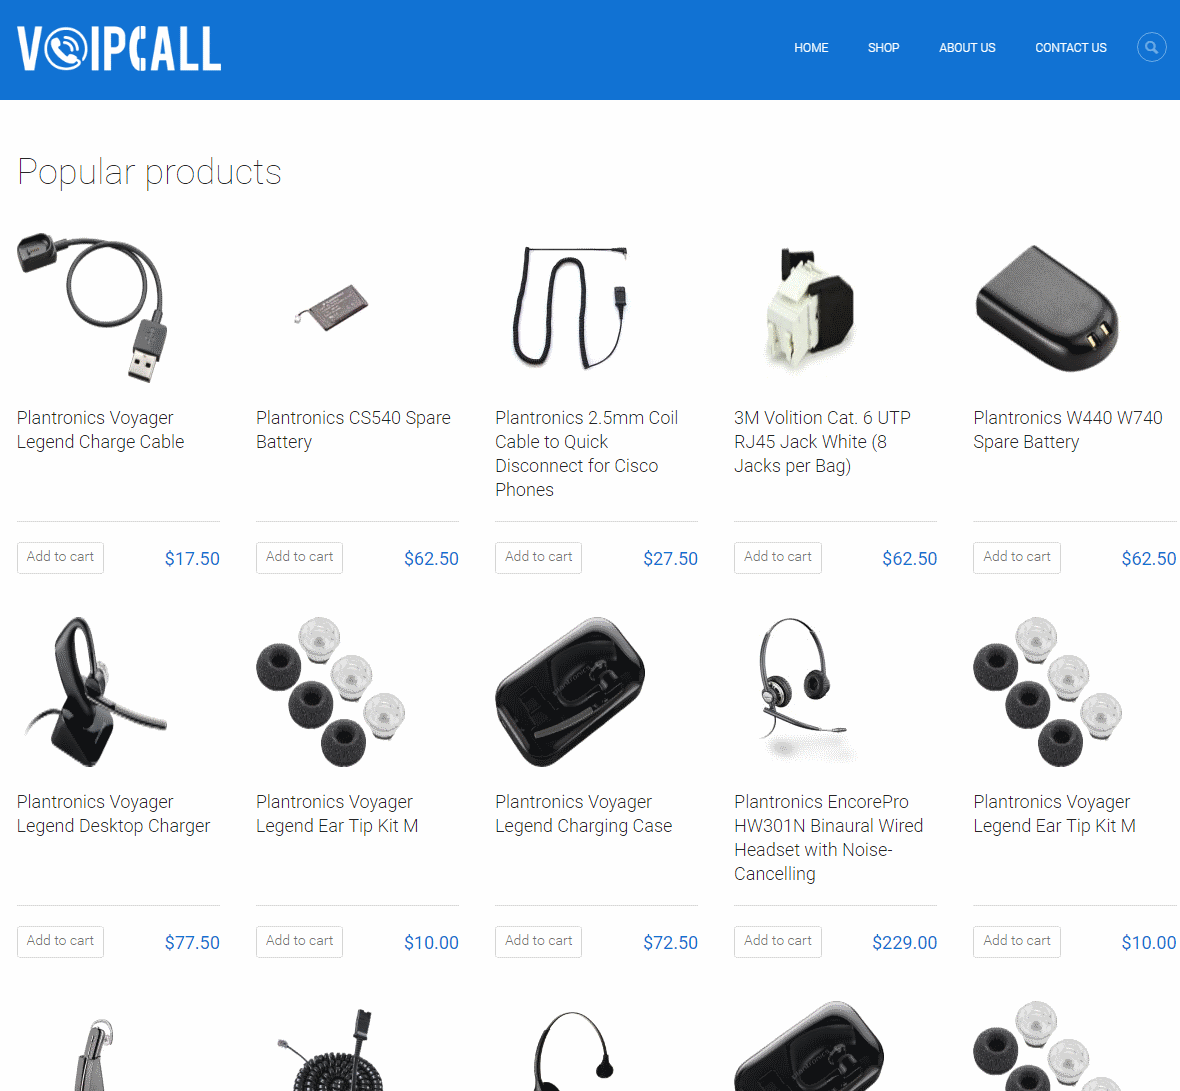 Our client VoipCall.co.nz website